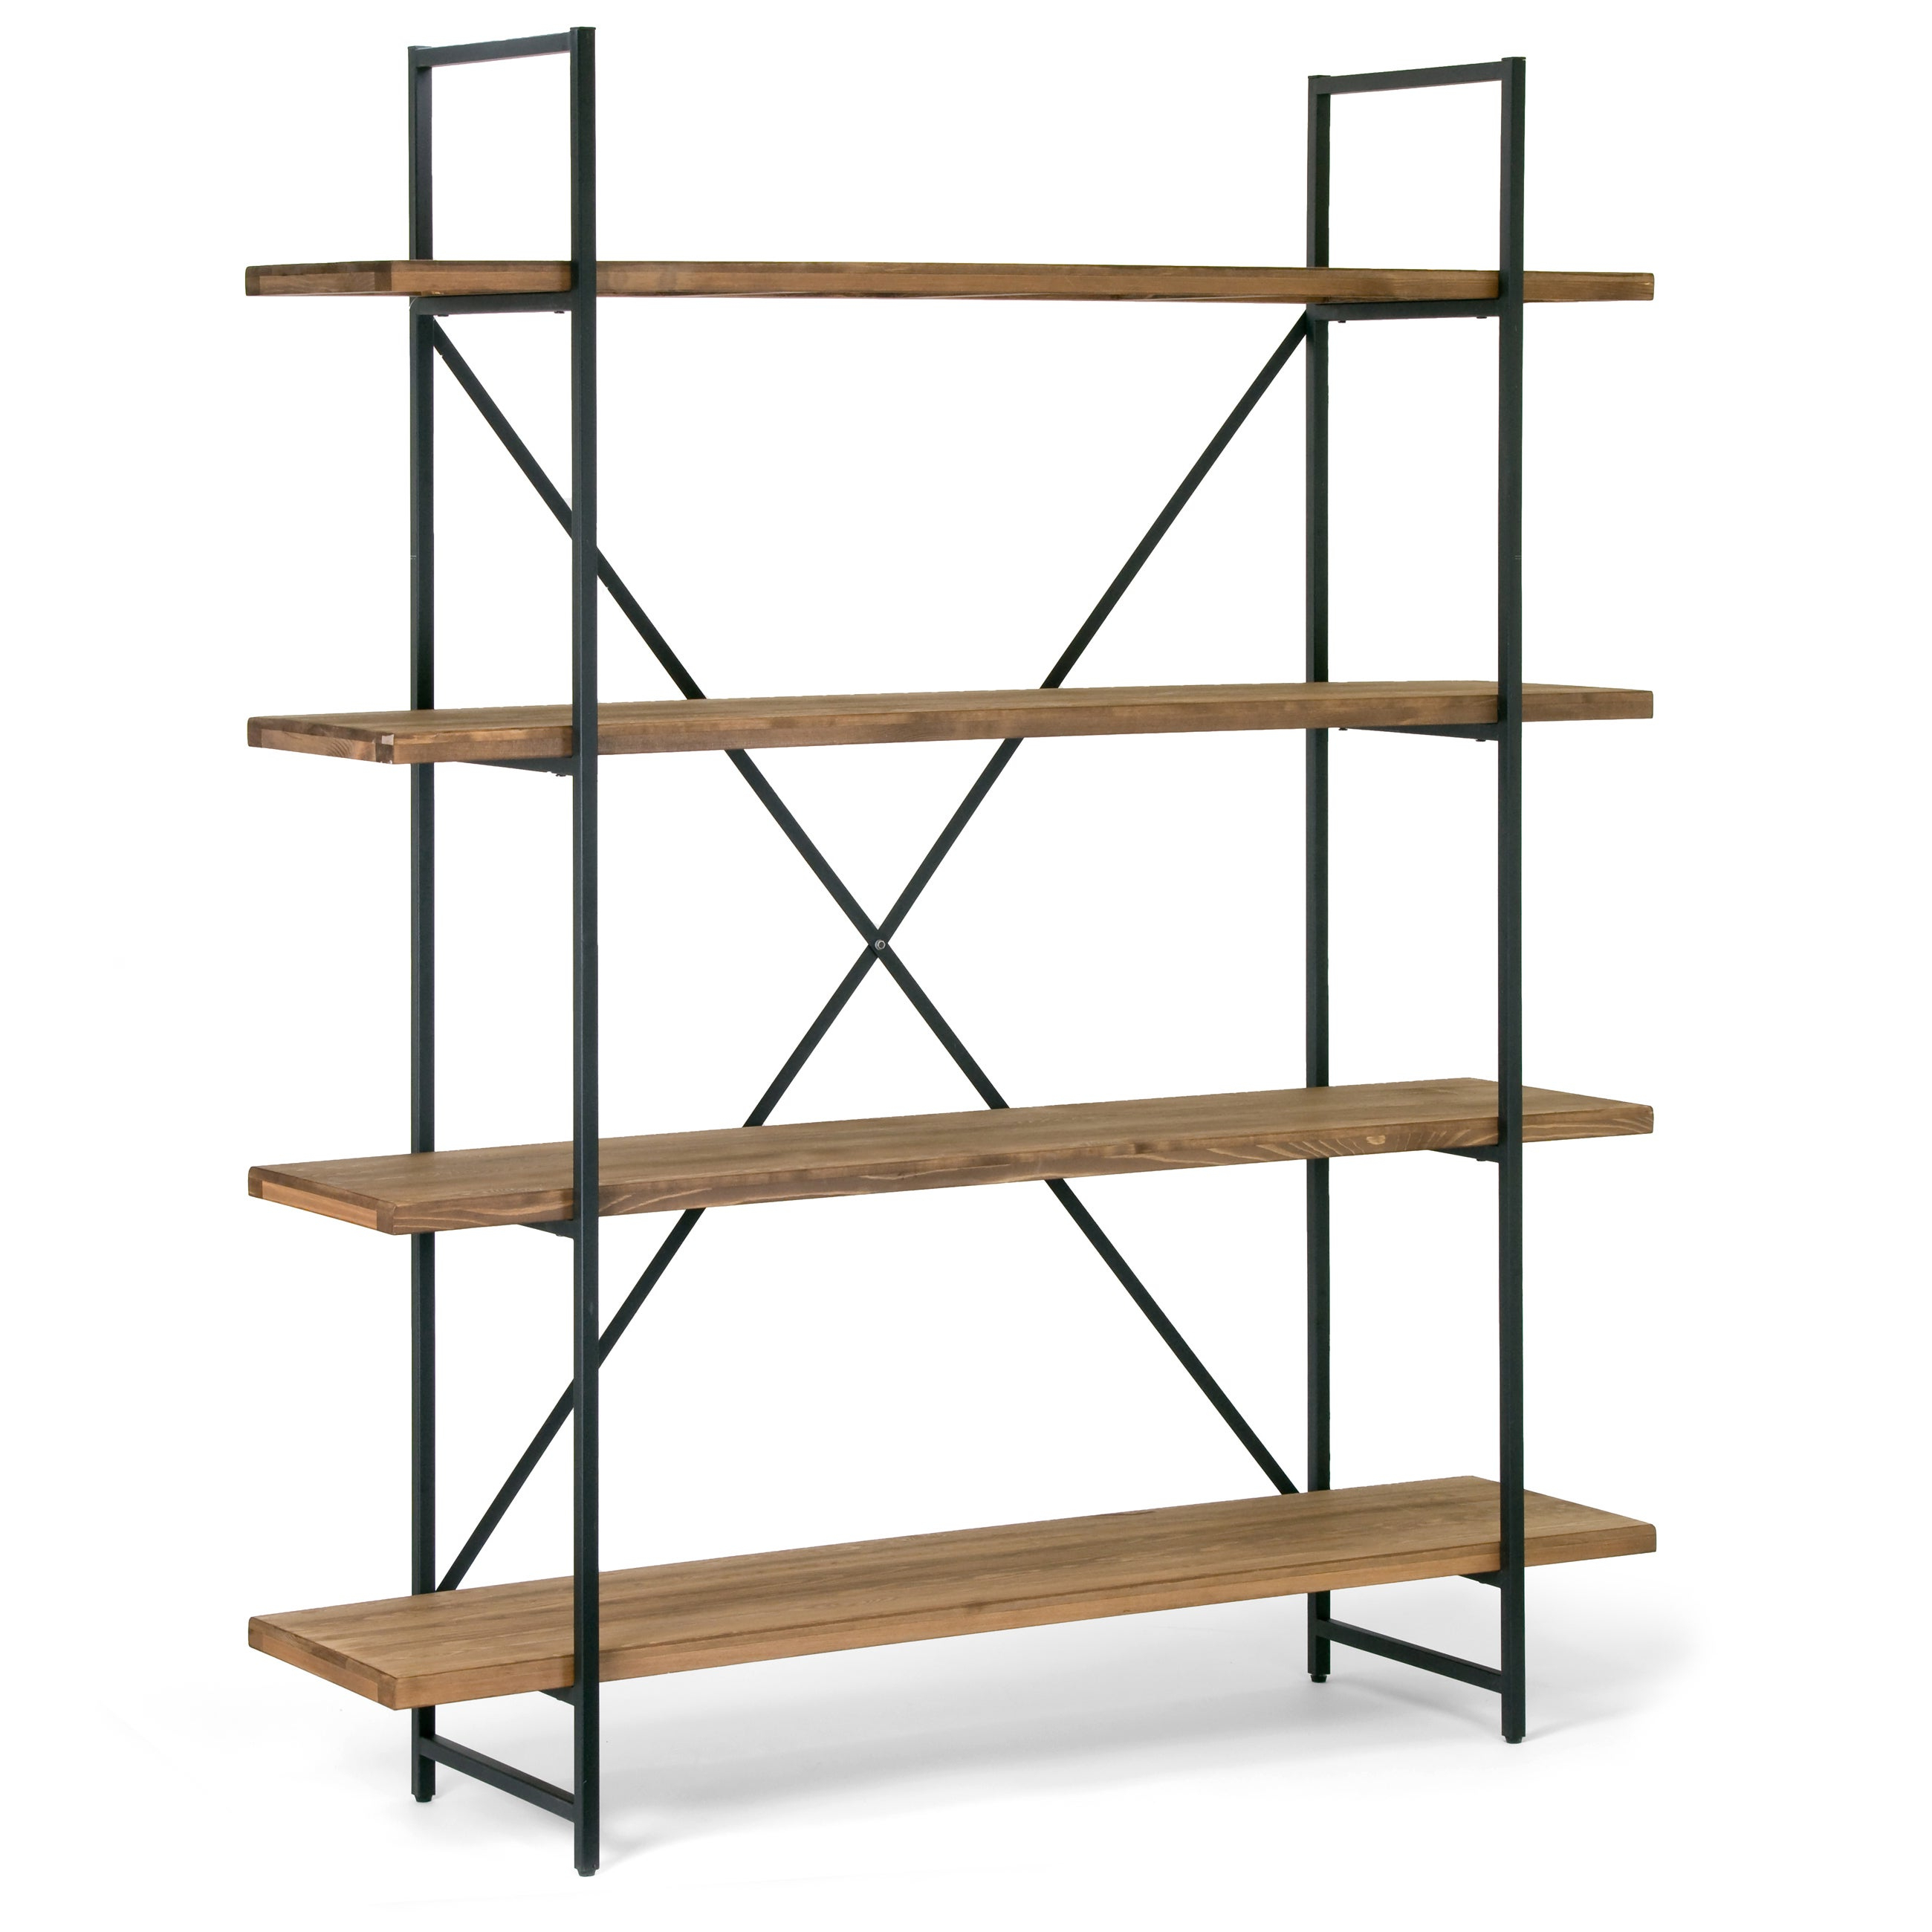 Buy Etagere Bookshelves & Bookcases Online At Overstock For Most Recent Ebba Etagere Bookcases (View 5 of 20)